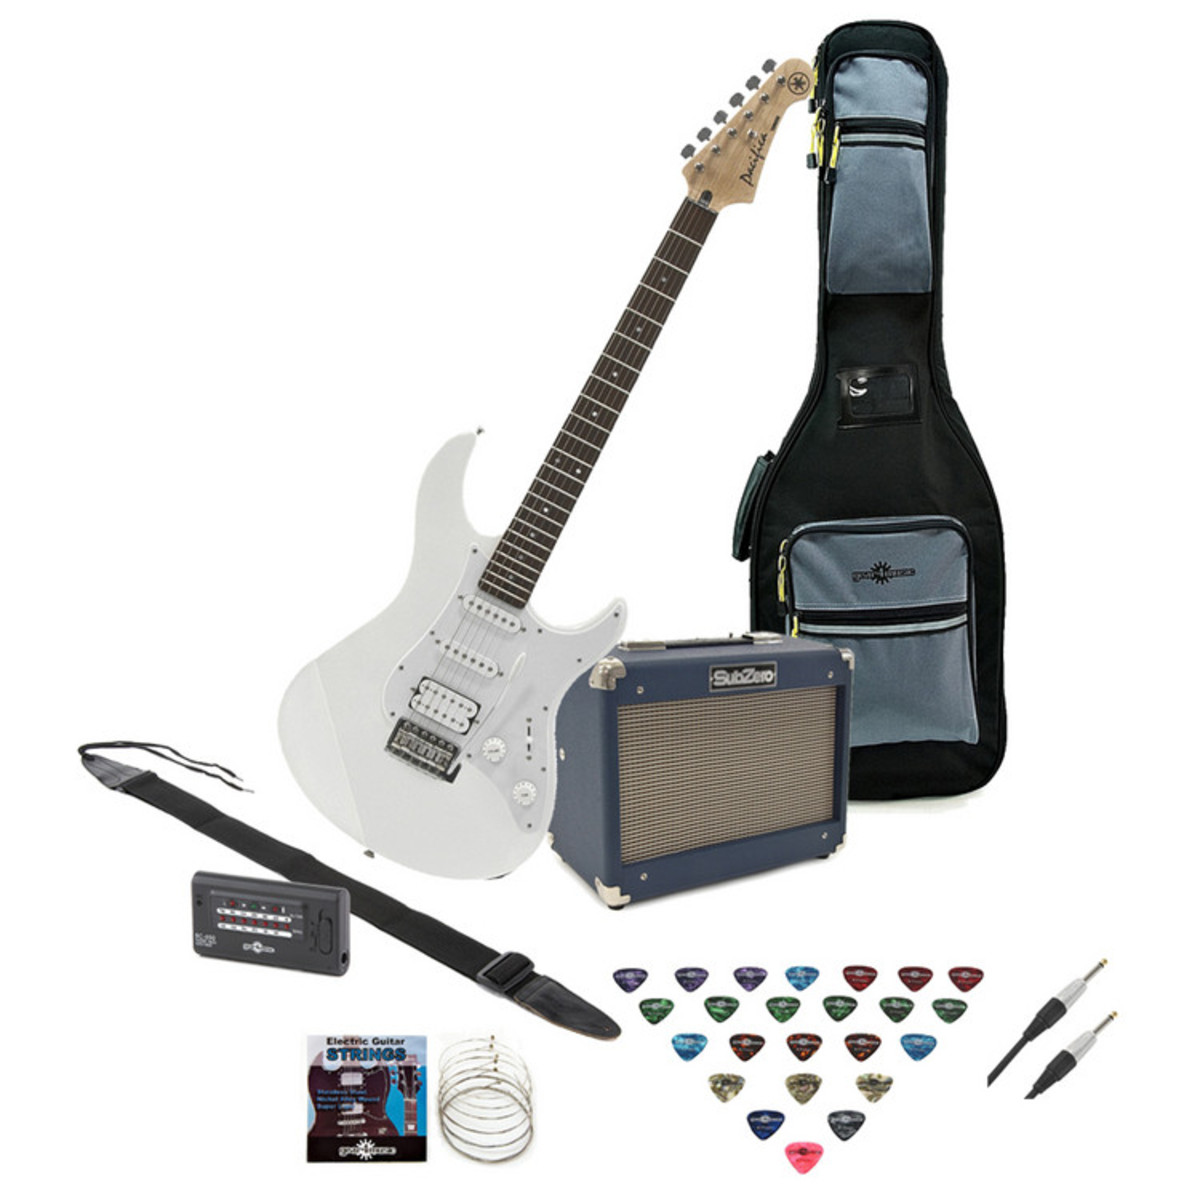 yamaha pacifica 012 electric guitar white with subzero 10w amp pack at gear4music. Black Bedroom Furniture Sets. Home Design Ideas